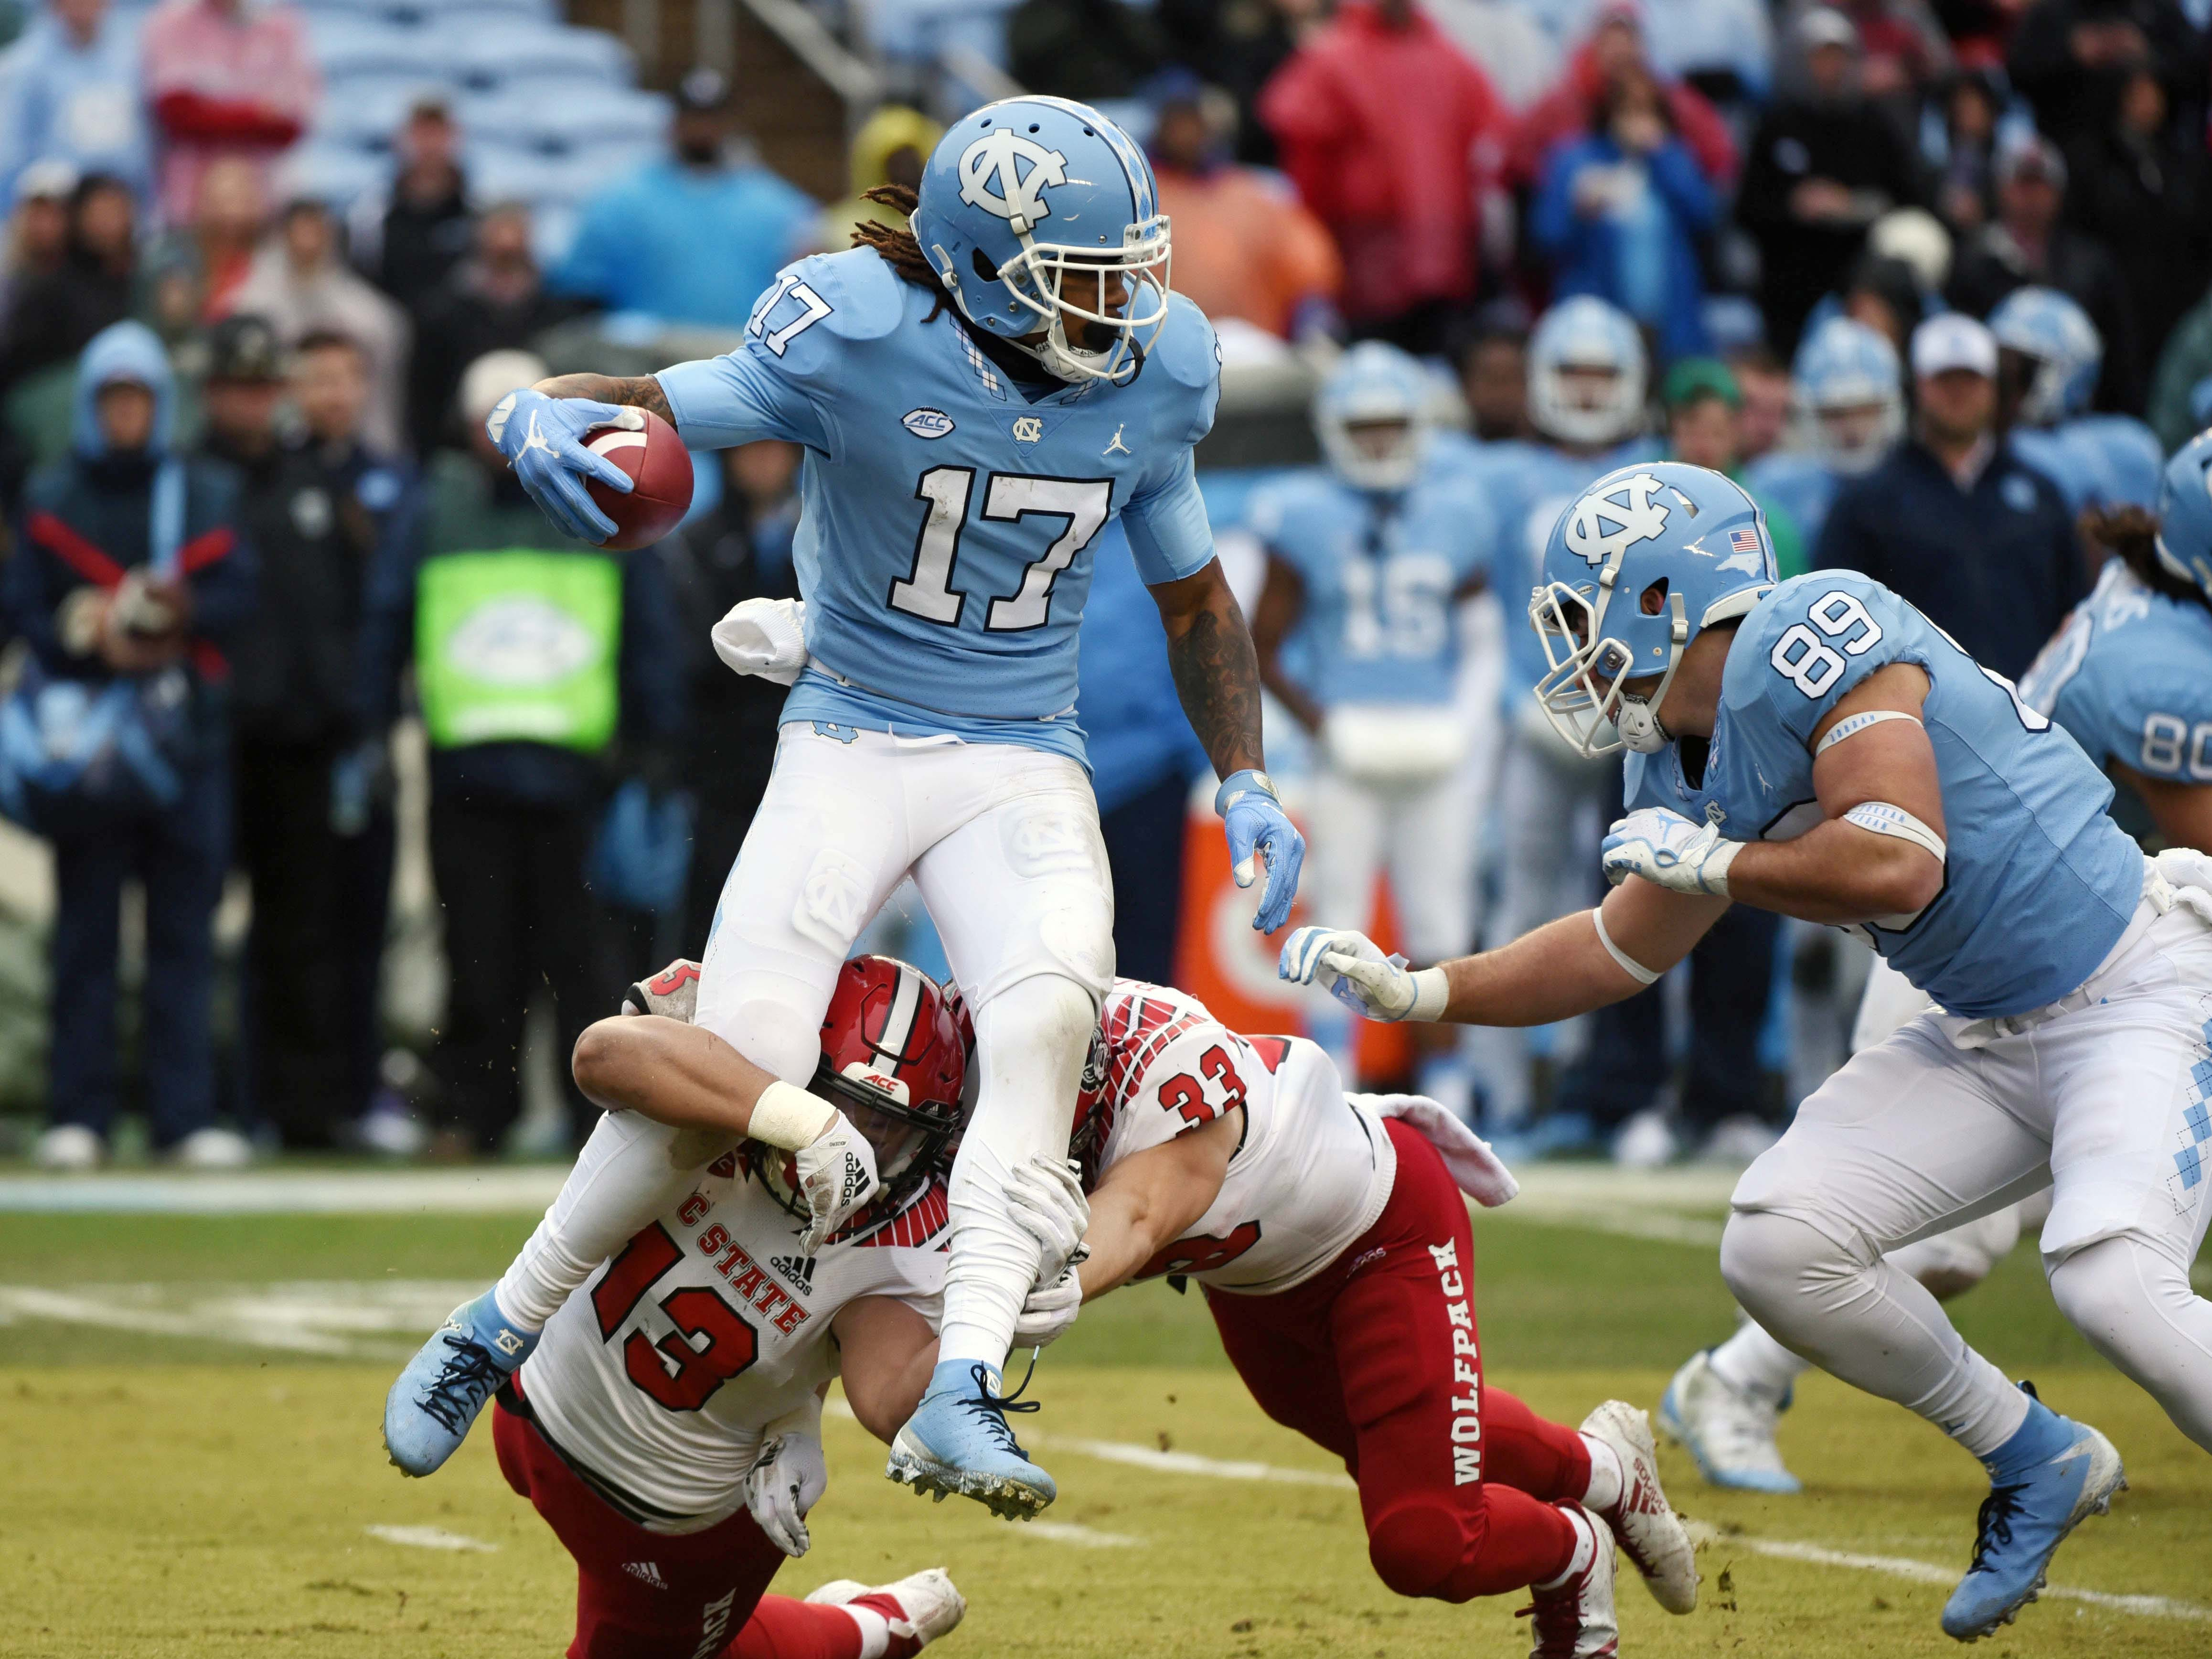 North Carolina Tar Heels receiver Anthony Ratliff-Williams (17) is tackled by North Carolina State Wolfpack defender Stephen Morrison (13) during the first half at Kenan Memorial Stadium.